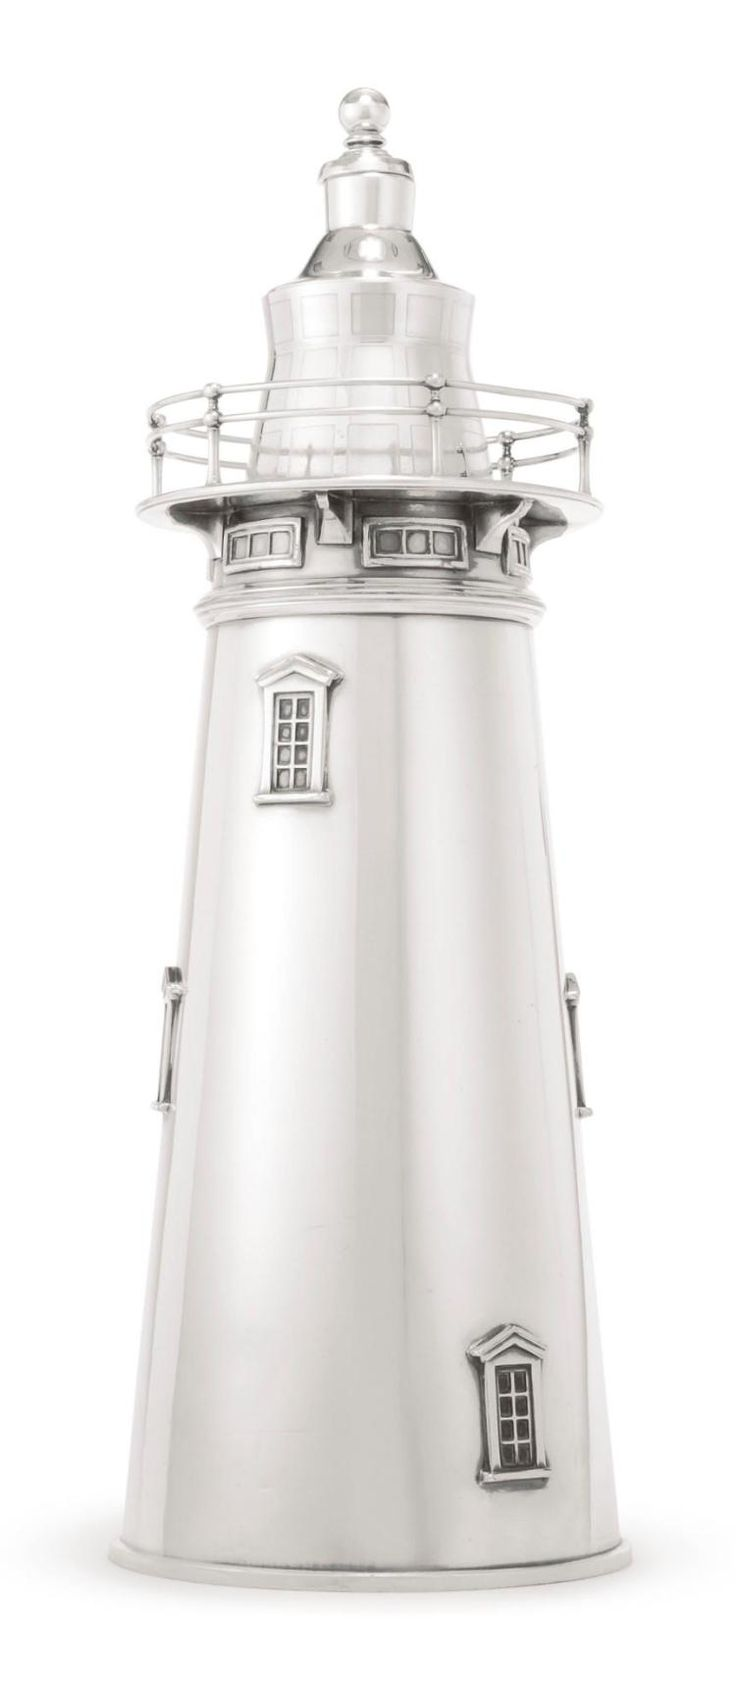 INTERNATIONAL SILVER CO. | Lighthouse Silver Plated Cocktail Shaker.